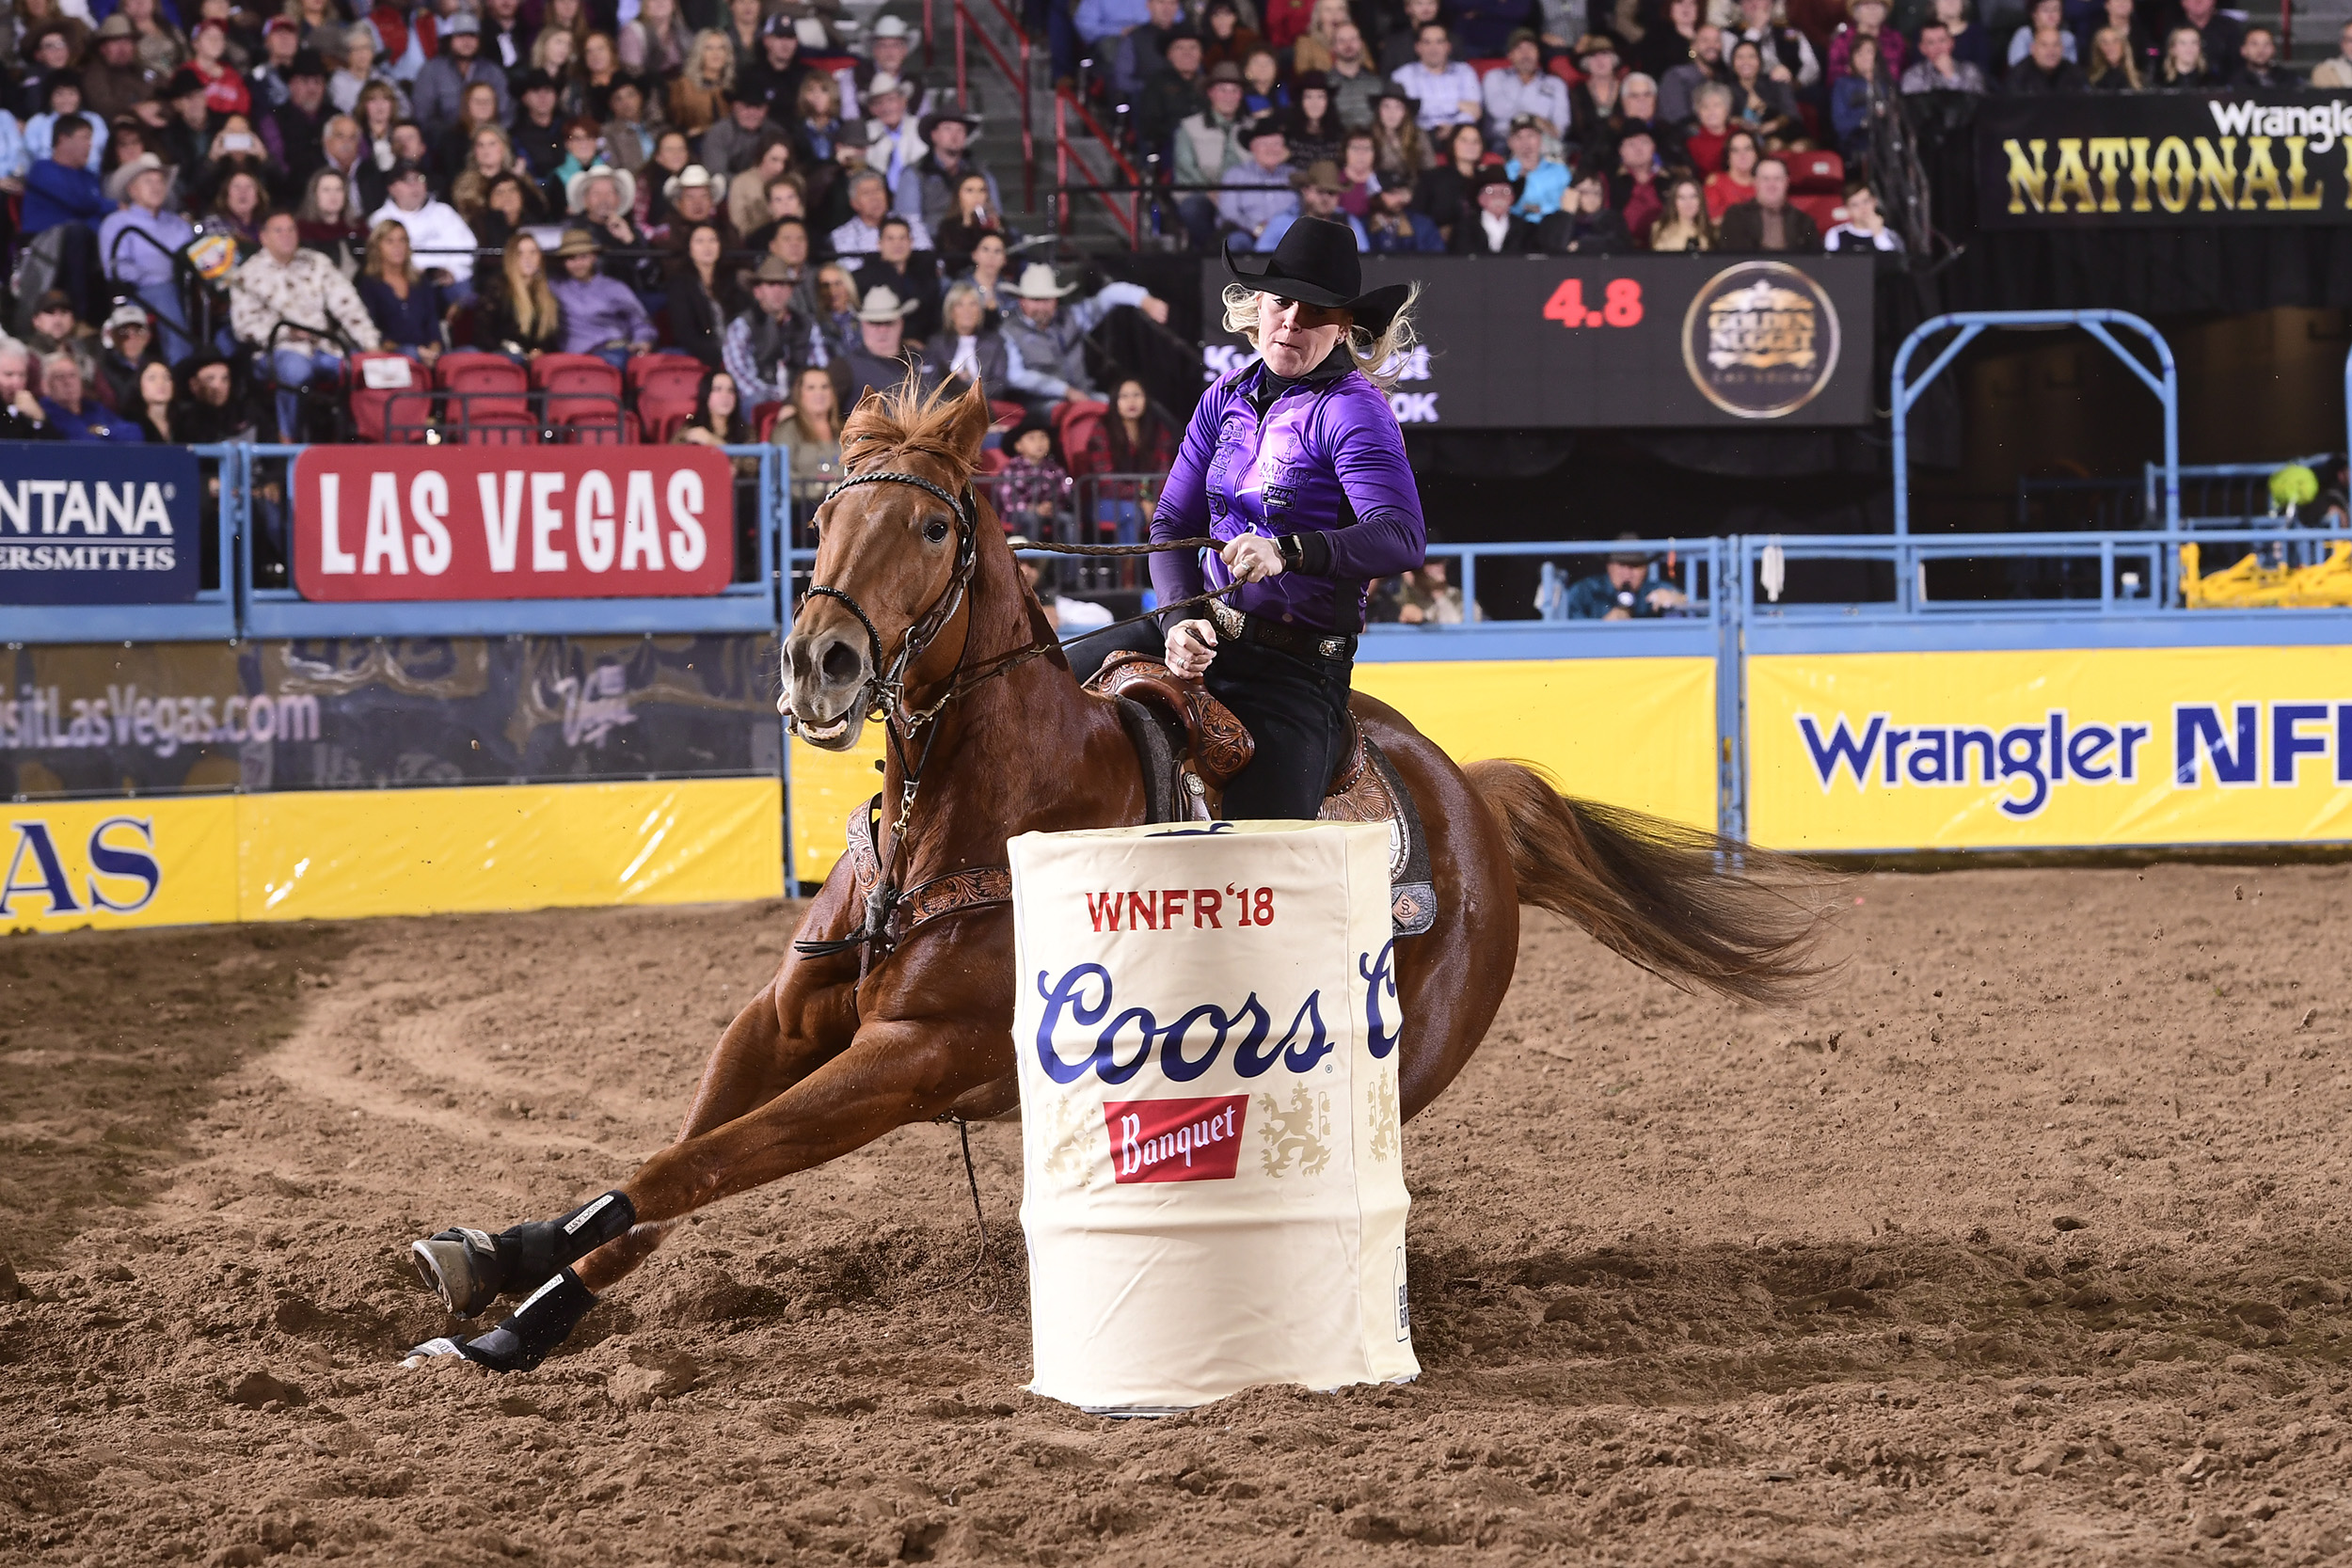 Kylie Weast and Reddy turn the second barrel en route to a 13.74-second run Wednesday to finish in a tie for fourth place in the seventh round of the National Finals Rodeo. (PRCA PRORODEO PHOTO BY JAMES PHIFER)